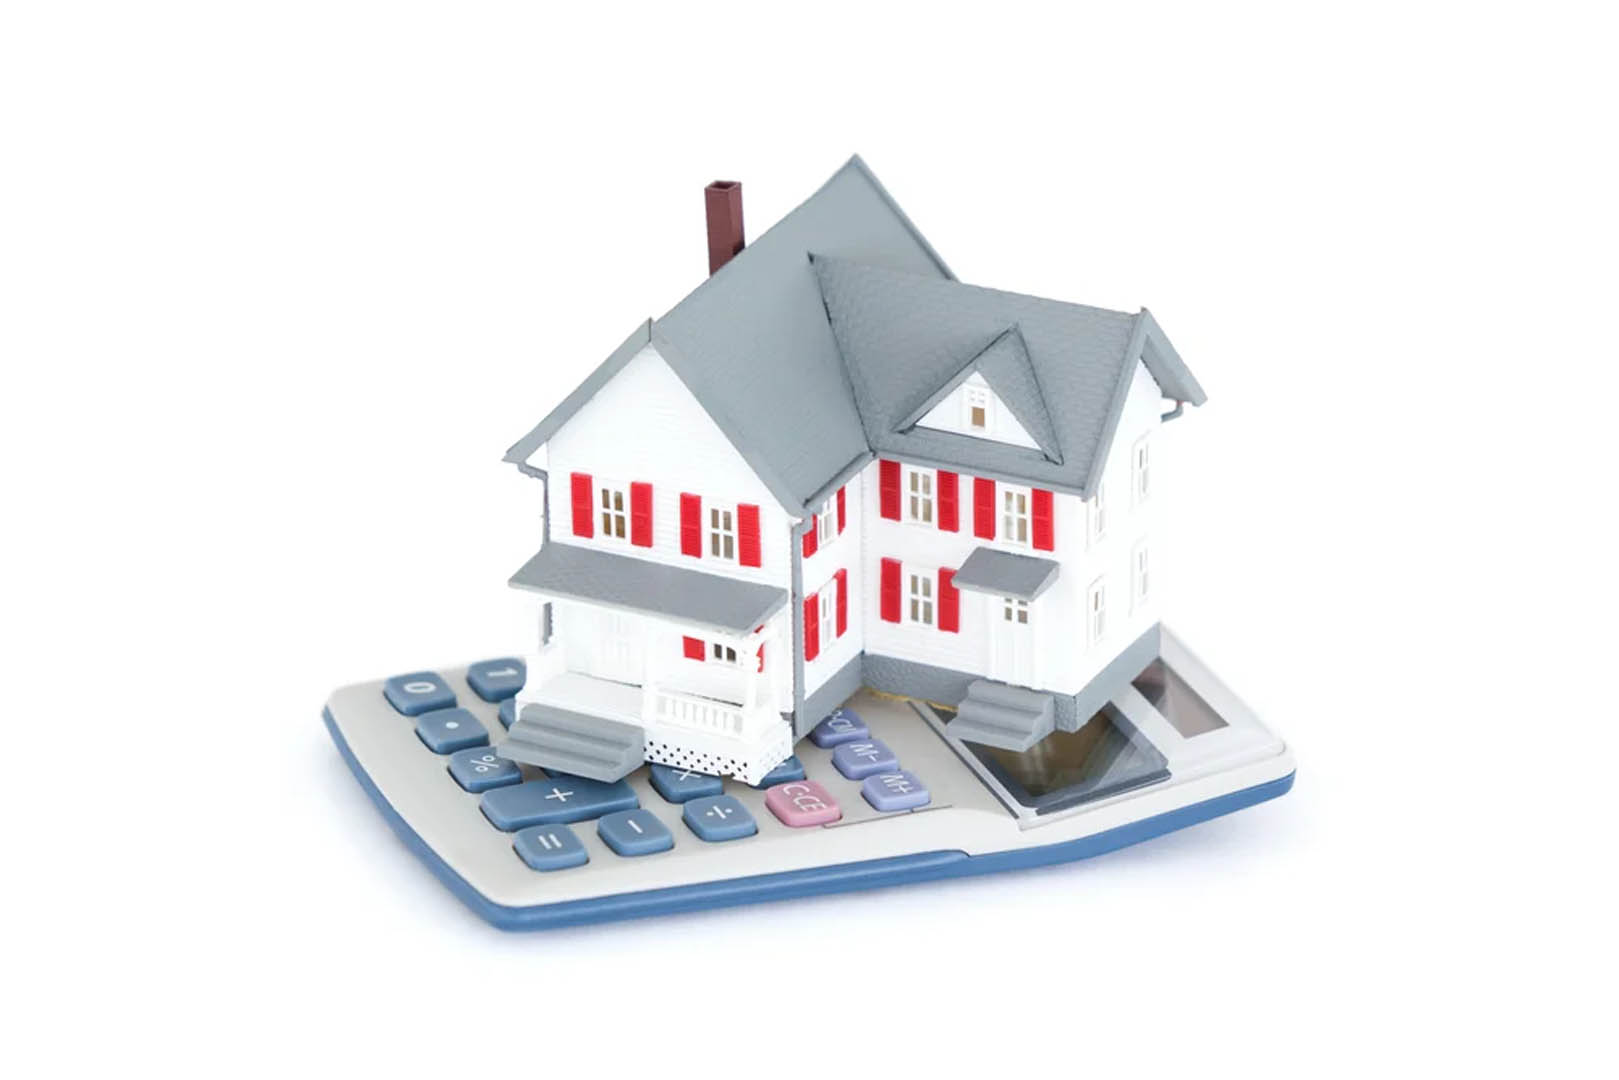 Miniature-house-with-a-calculator-against-a-white-background